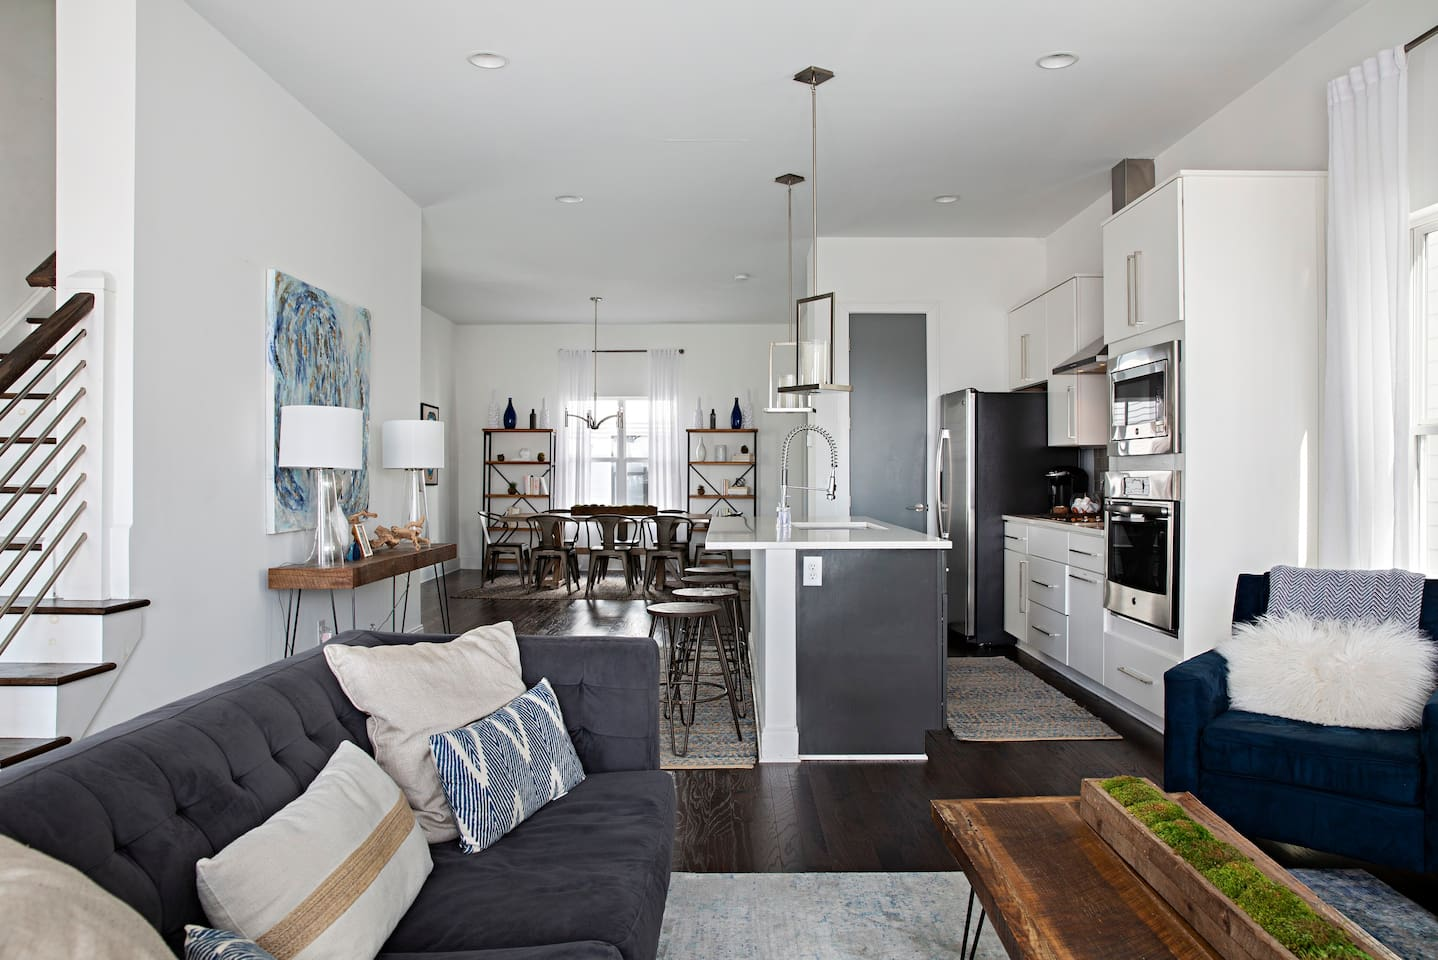 Clean & Spacious, perfect for your group PLUS a huge rooftop deck with 360 degree views of the Nashville skyline!